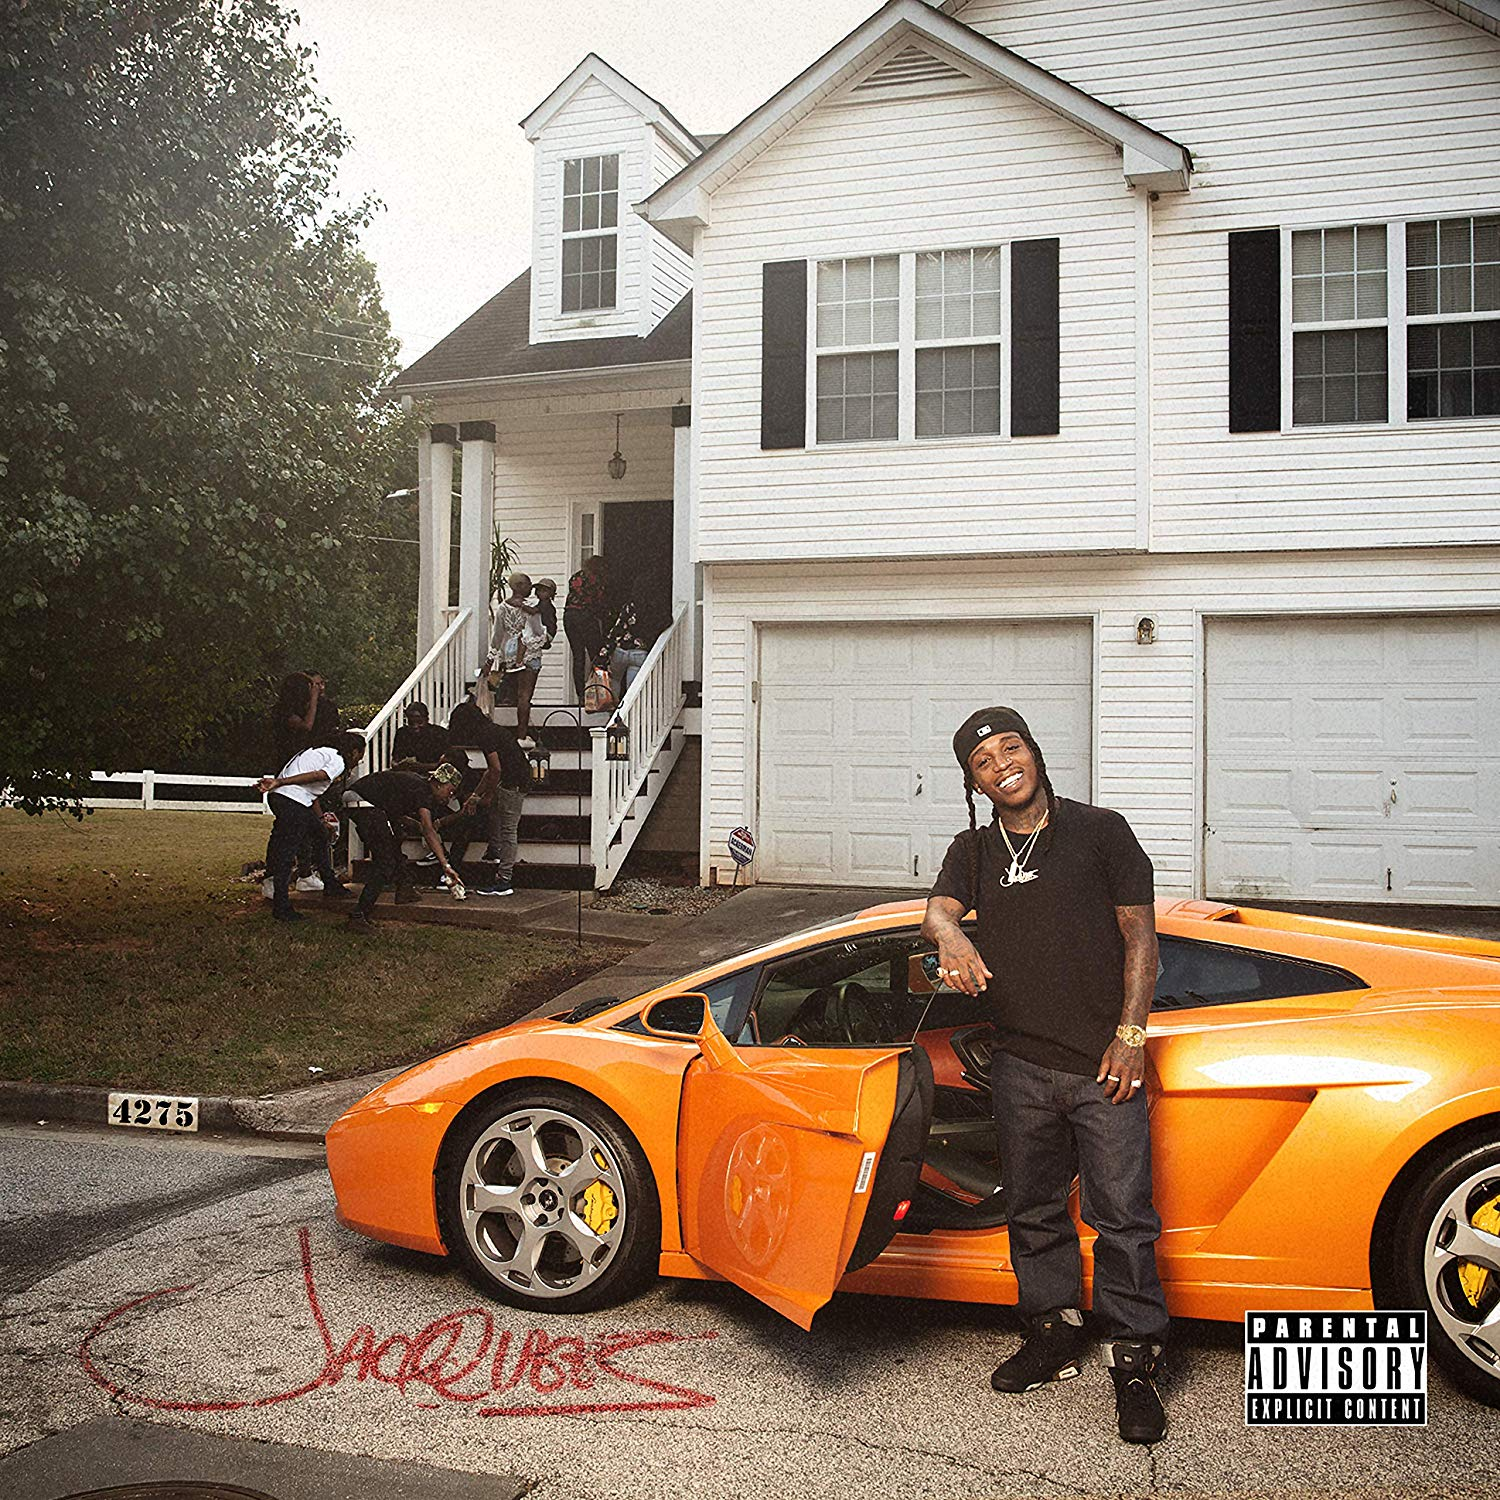 Jacquees - 4275 [Import]